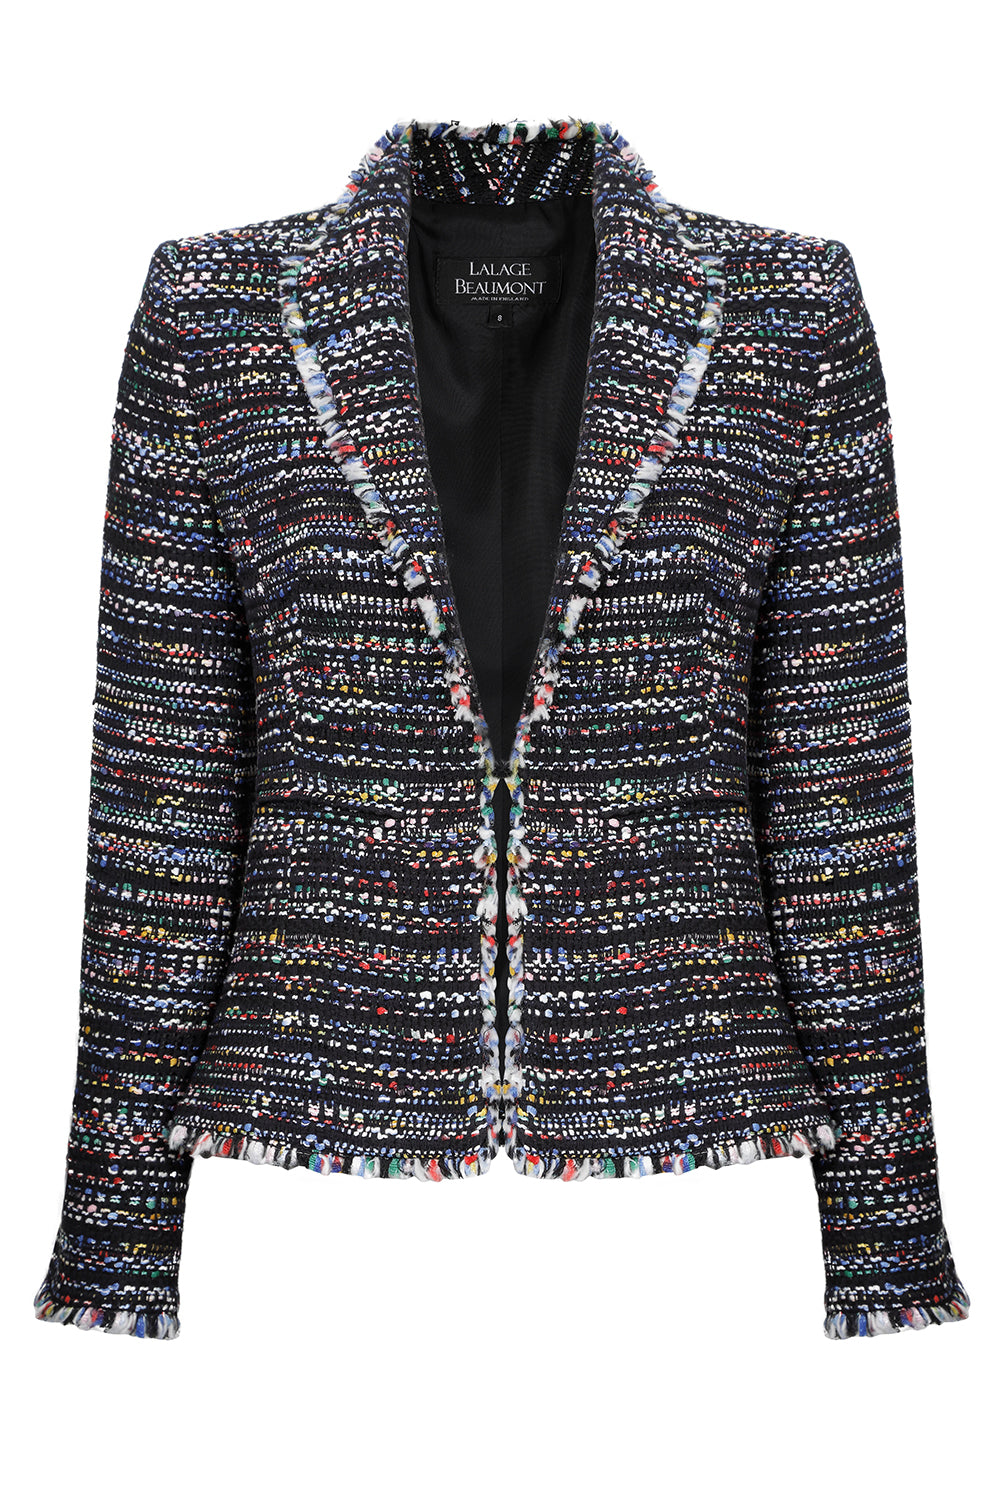 designer womens business jacket